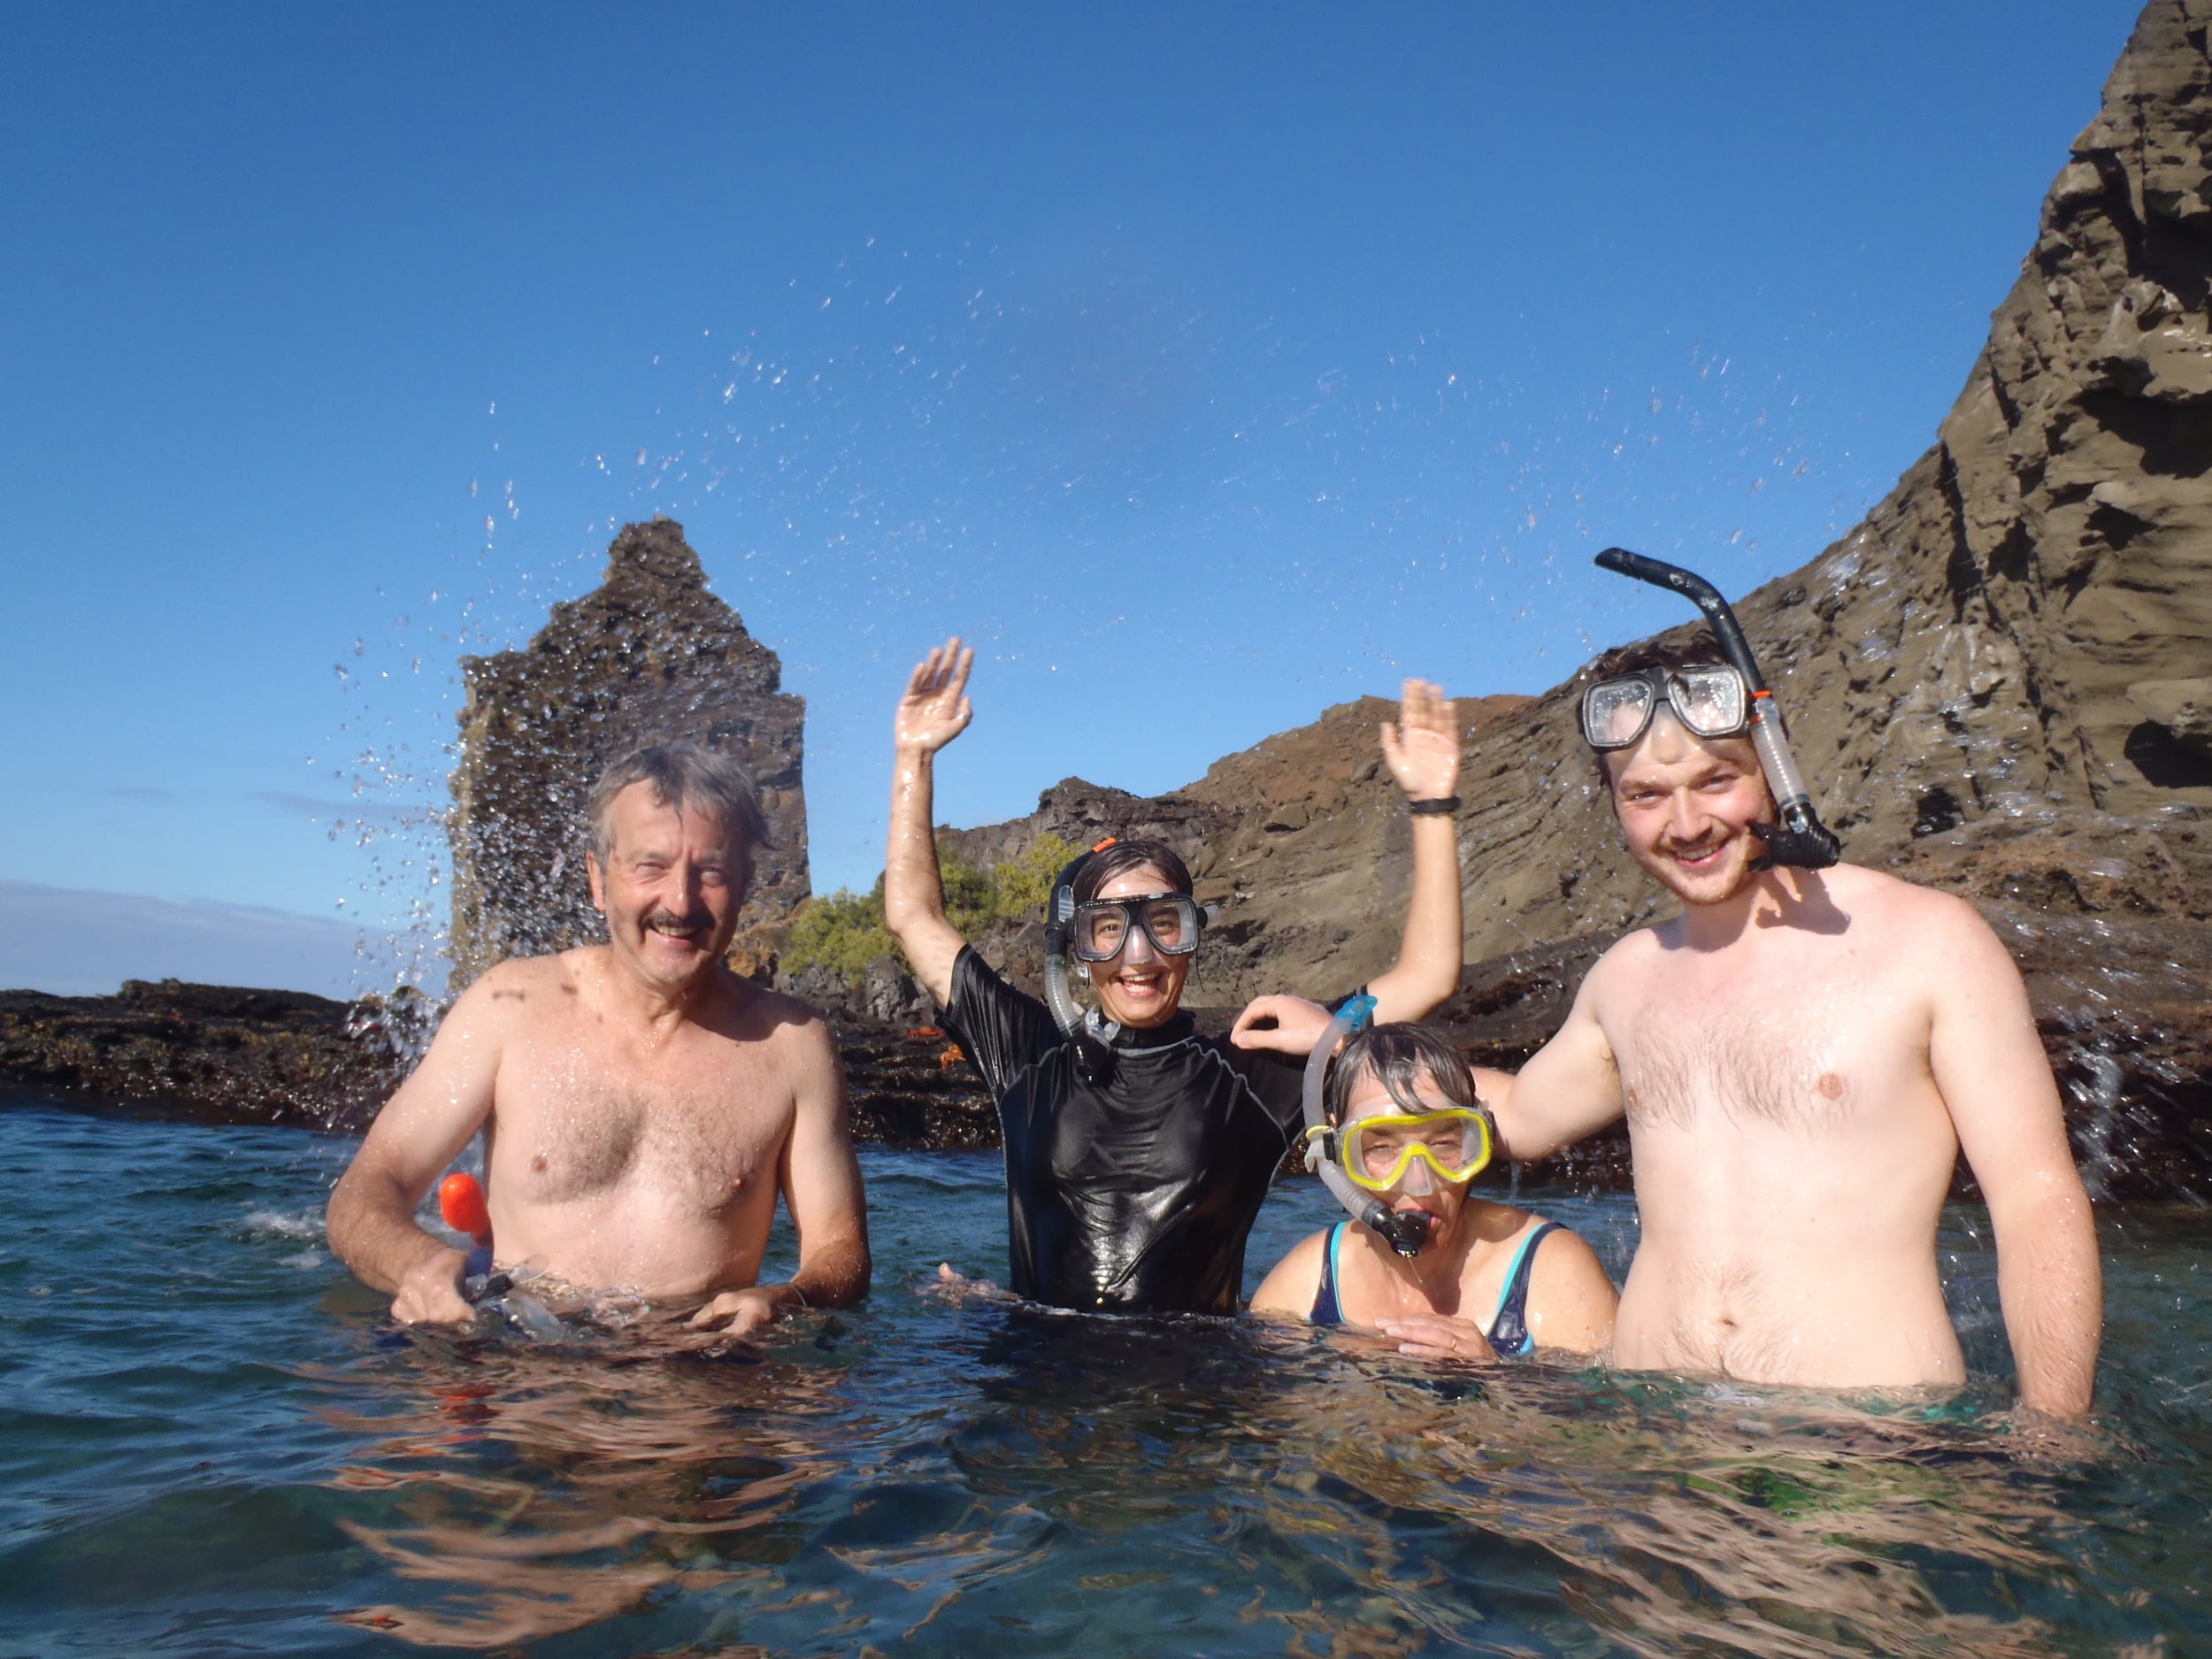 Rog, Nia, Jan and Rhod - a few days into the trip.